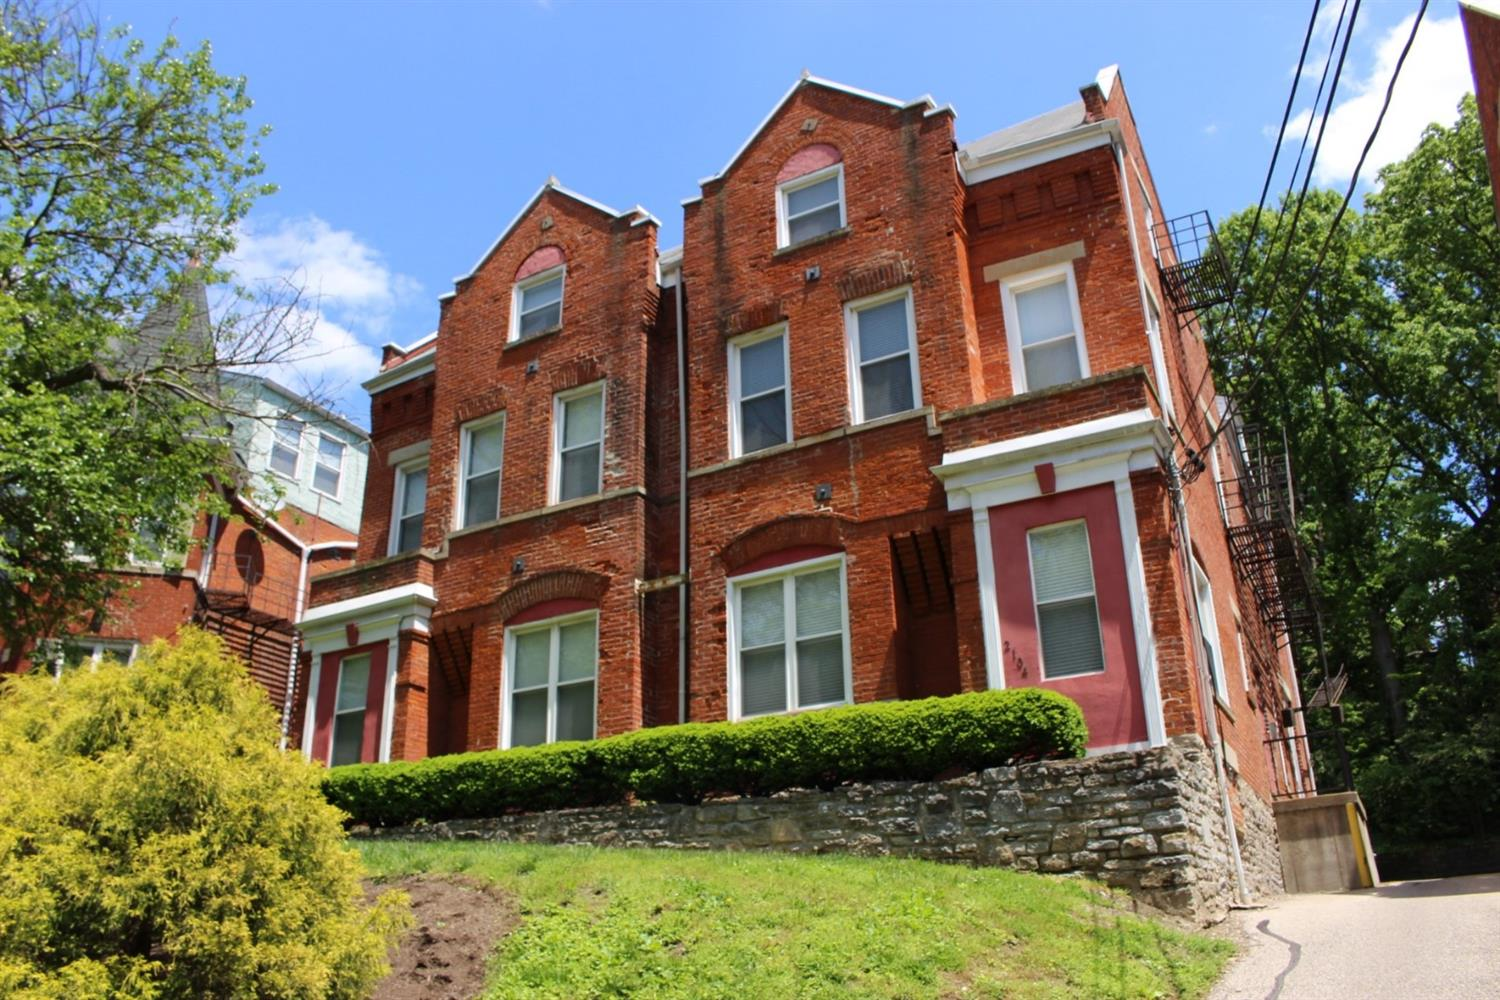 Photo 2 for 2104 Fulton Ave, 1 Walnut Hills, OH 45206